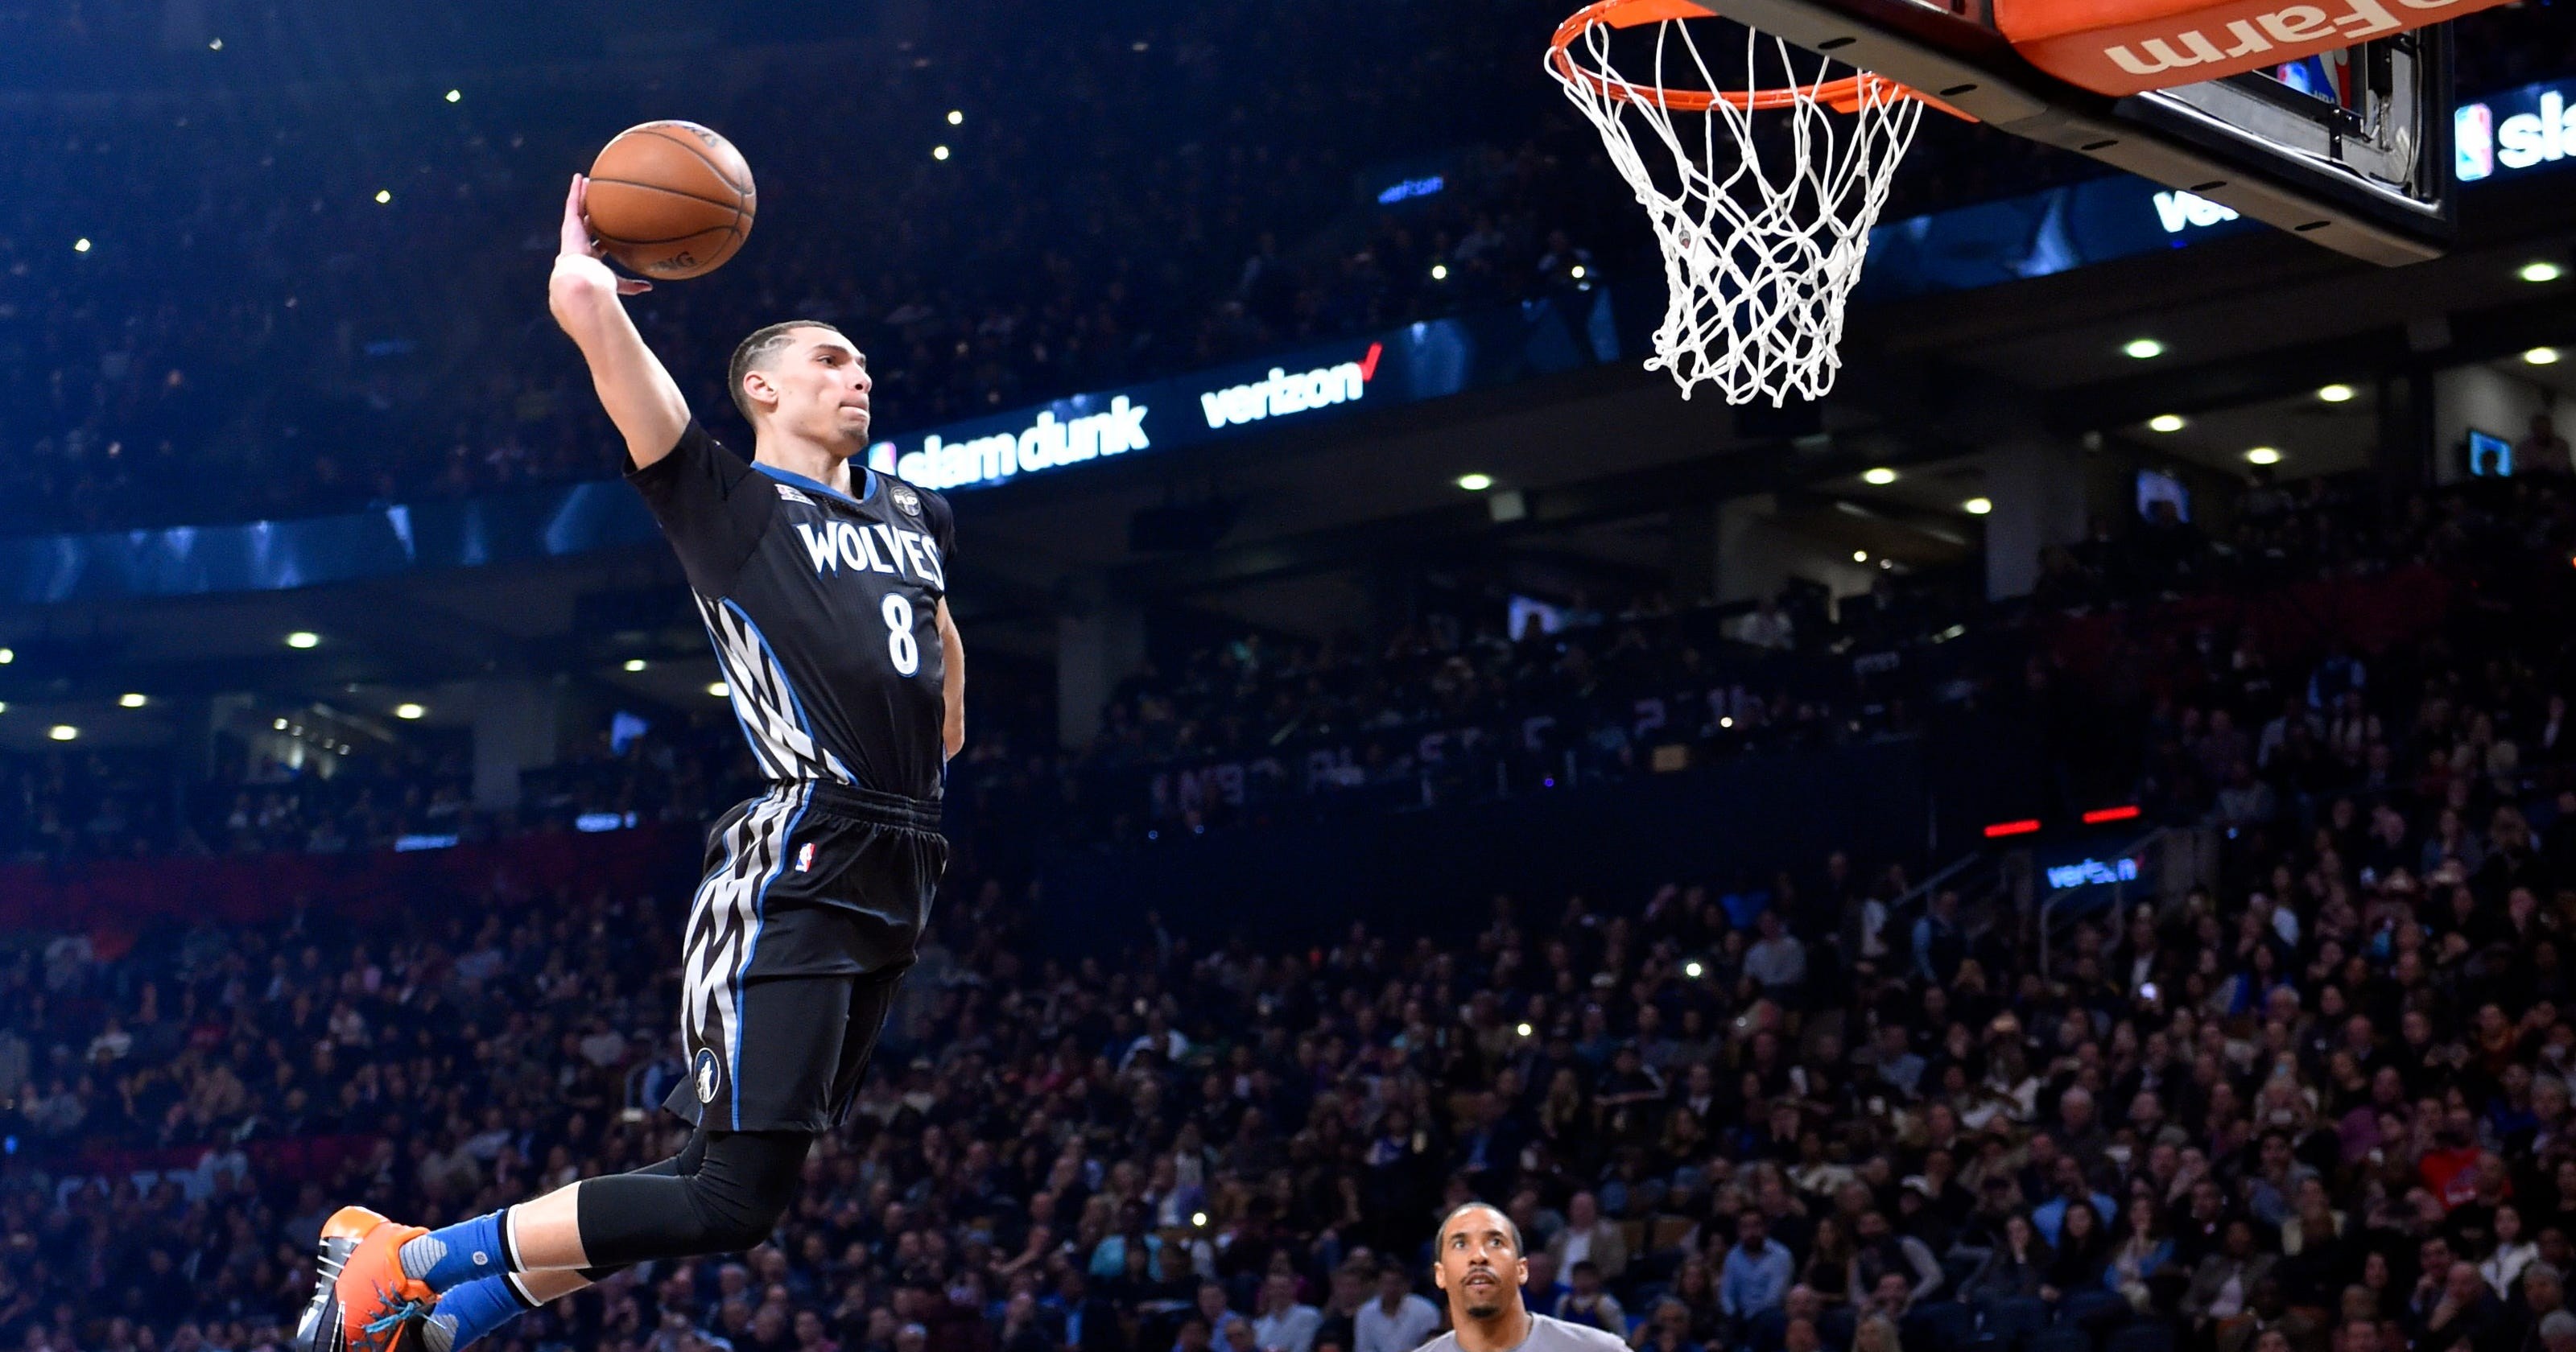 Zach LaVine puts on a show to win second straight dunk contest 4309364f8